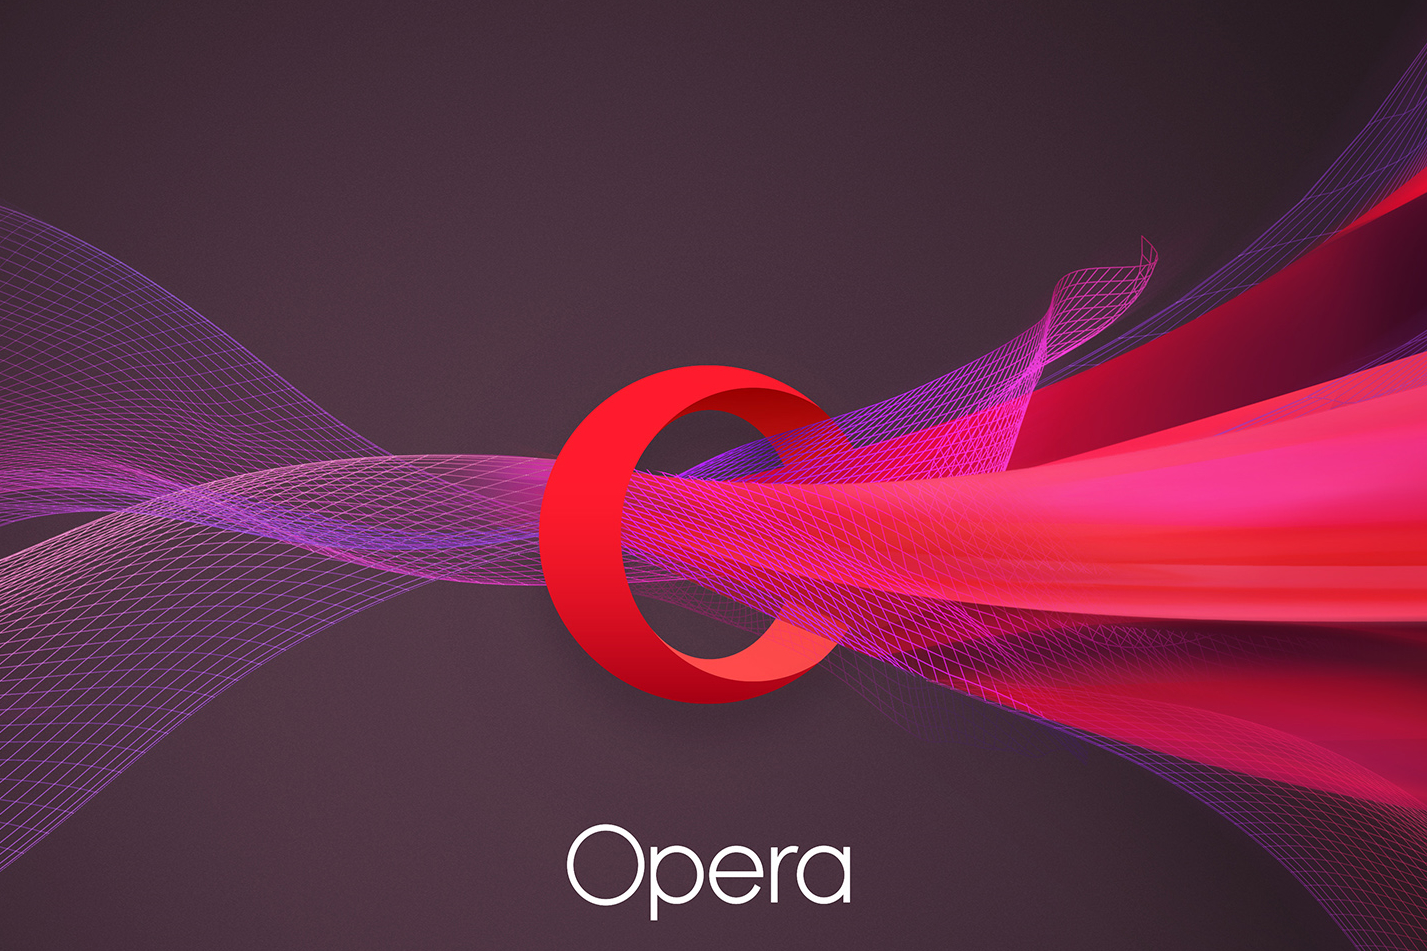 The most important features of Opera browser